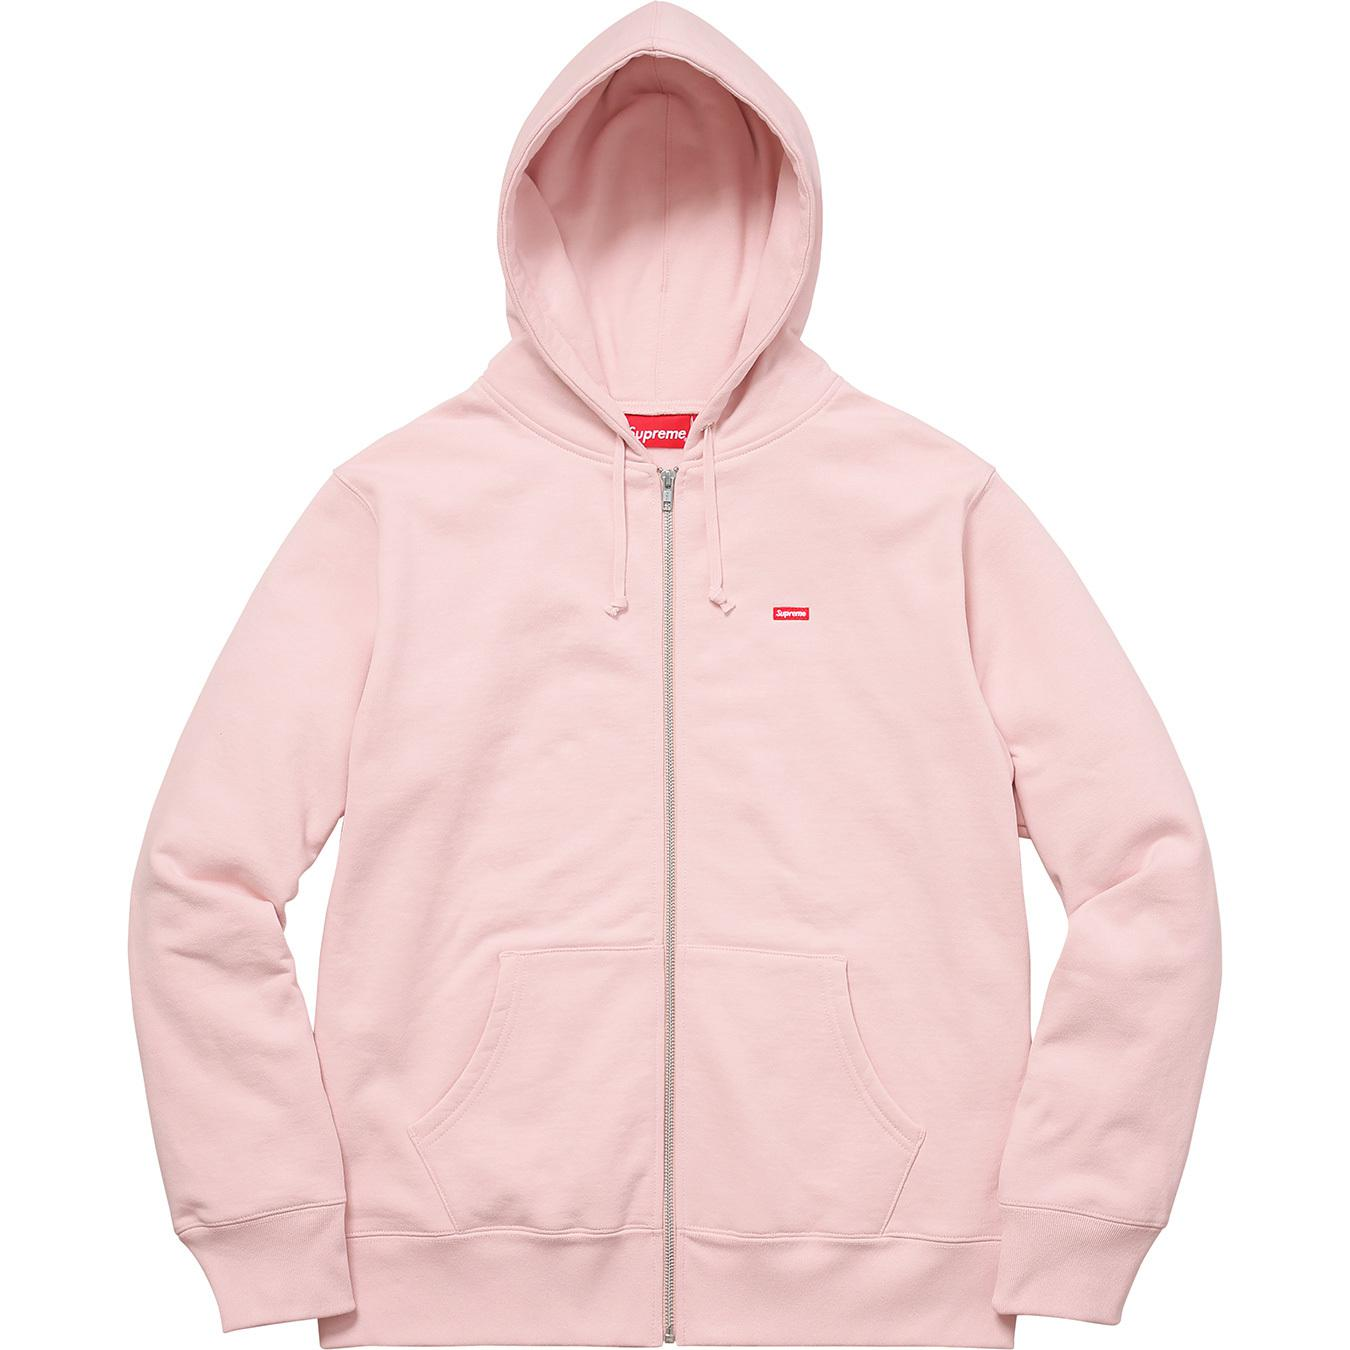 58a82f32147b Lyst - Supreme Tonal S Logo Hoodie Pale Pink in Pink for Men - Save 53%